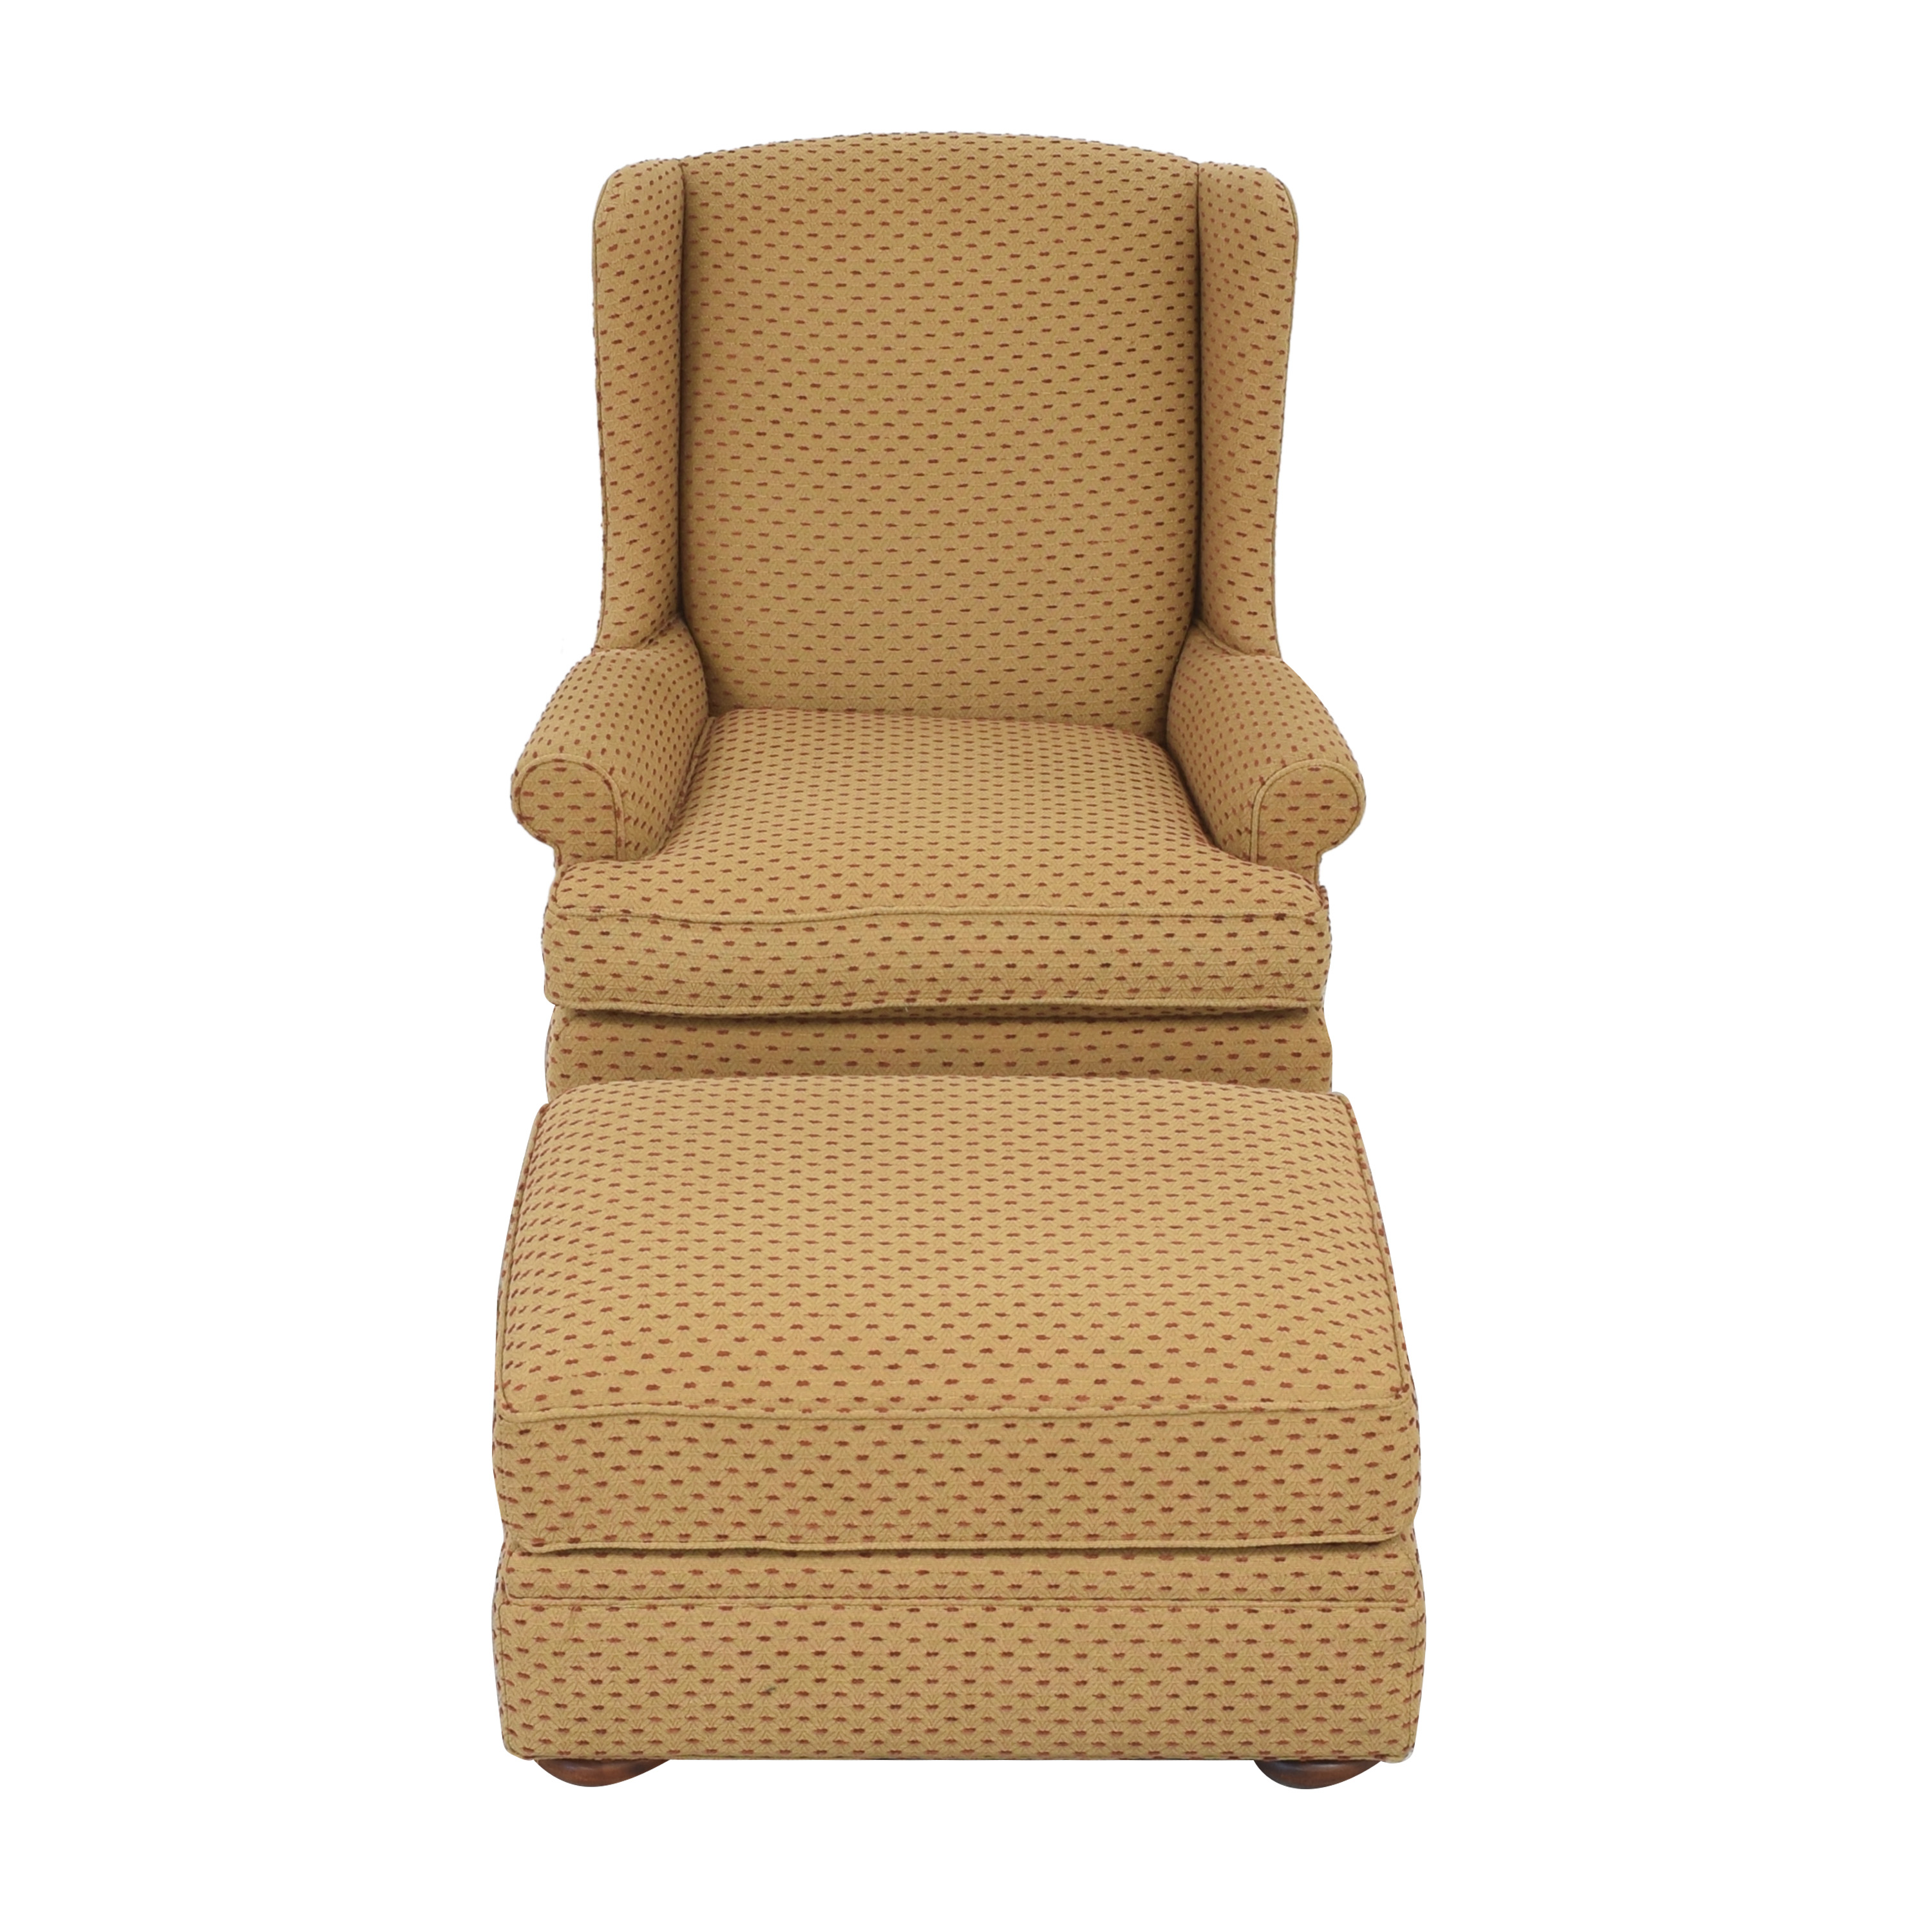 buy Thomasville Accent Chair with Ottoman Thomasville Chairs